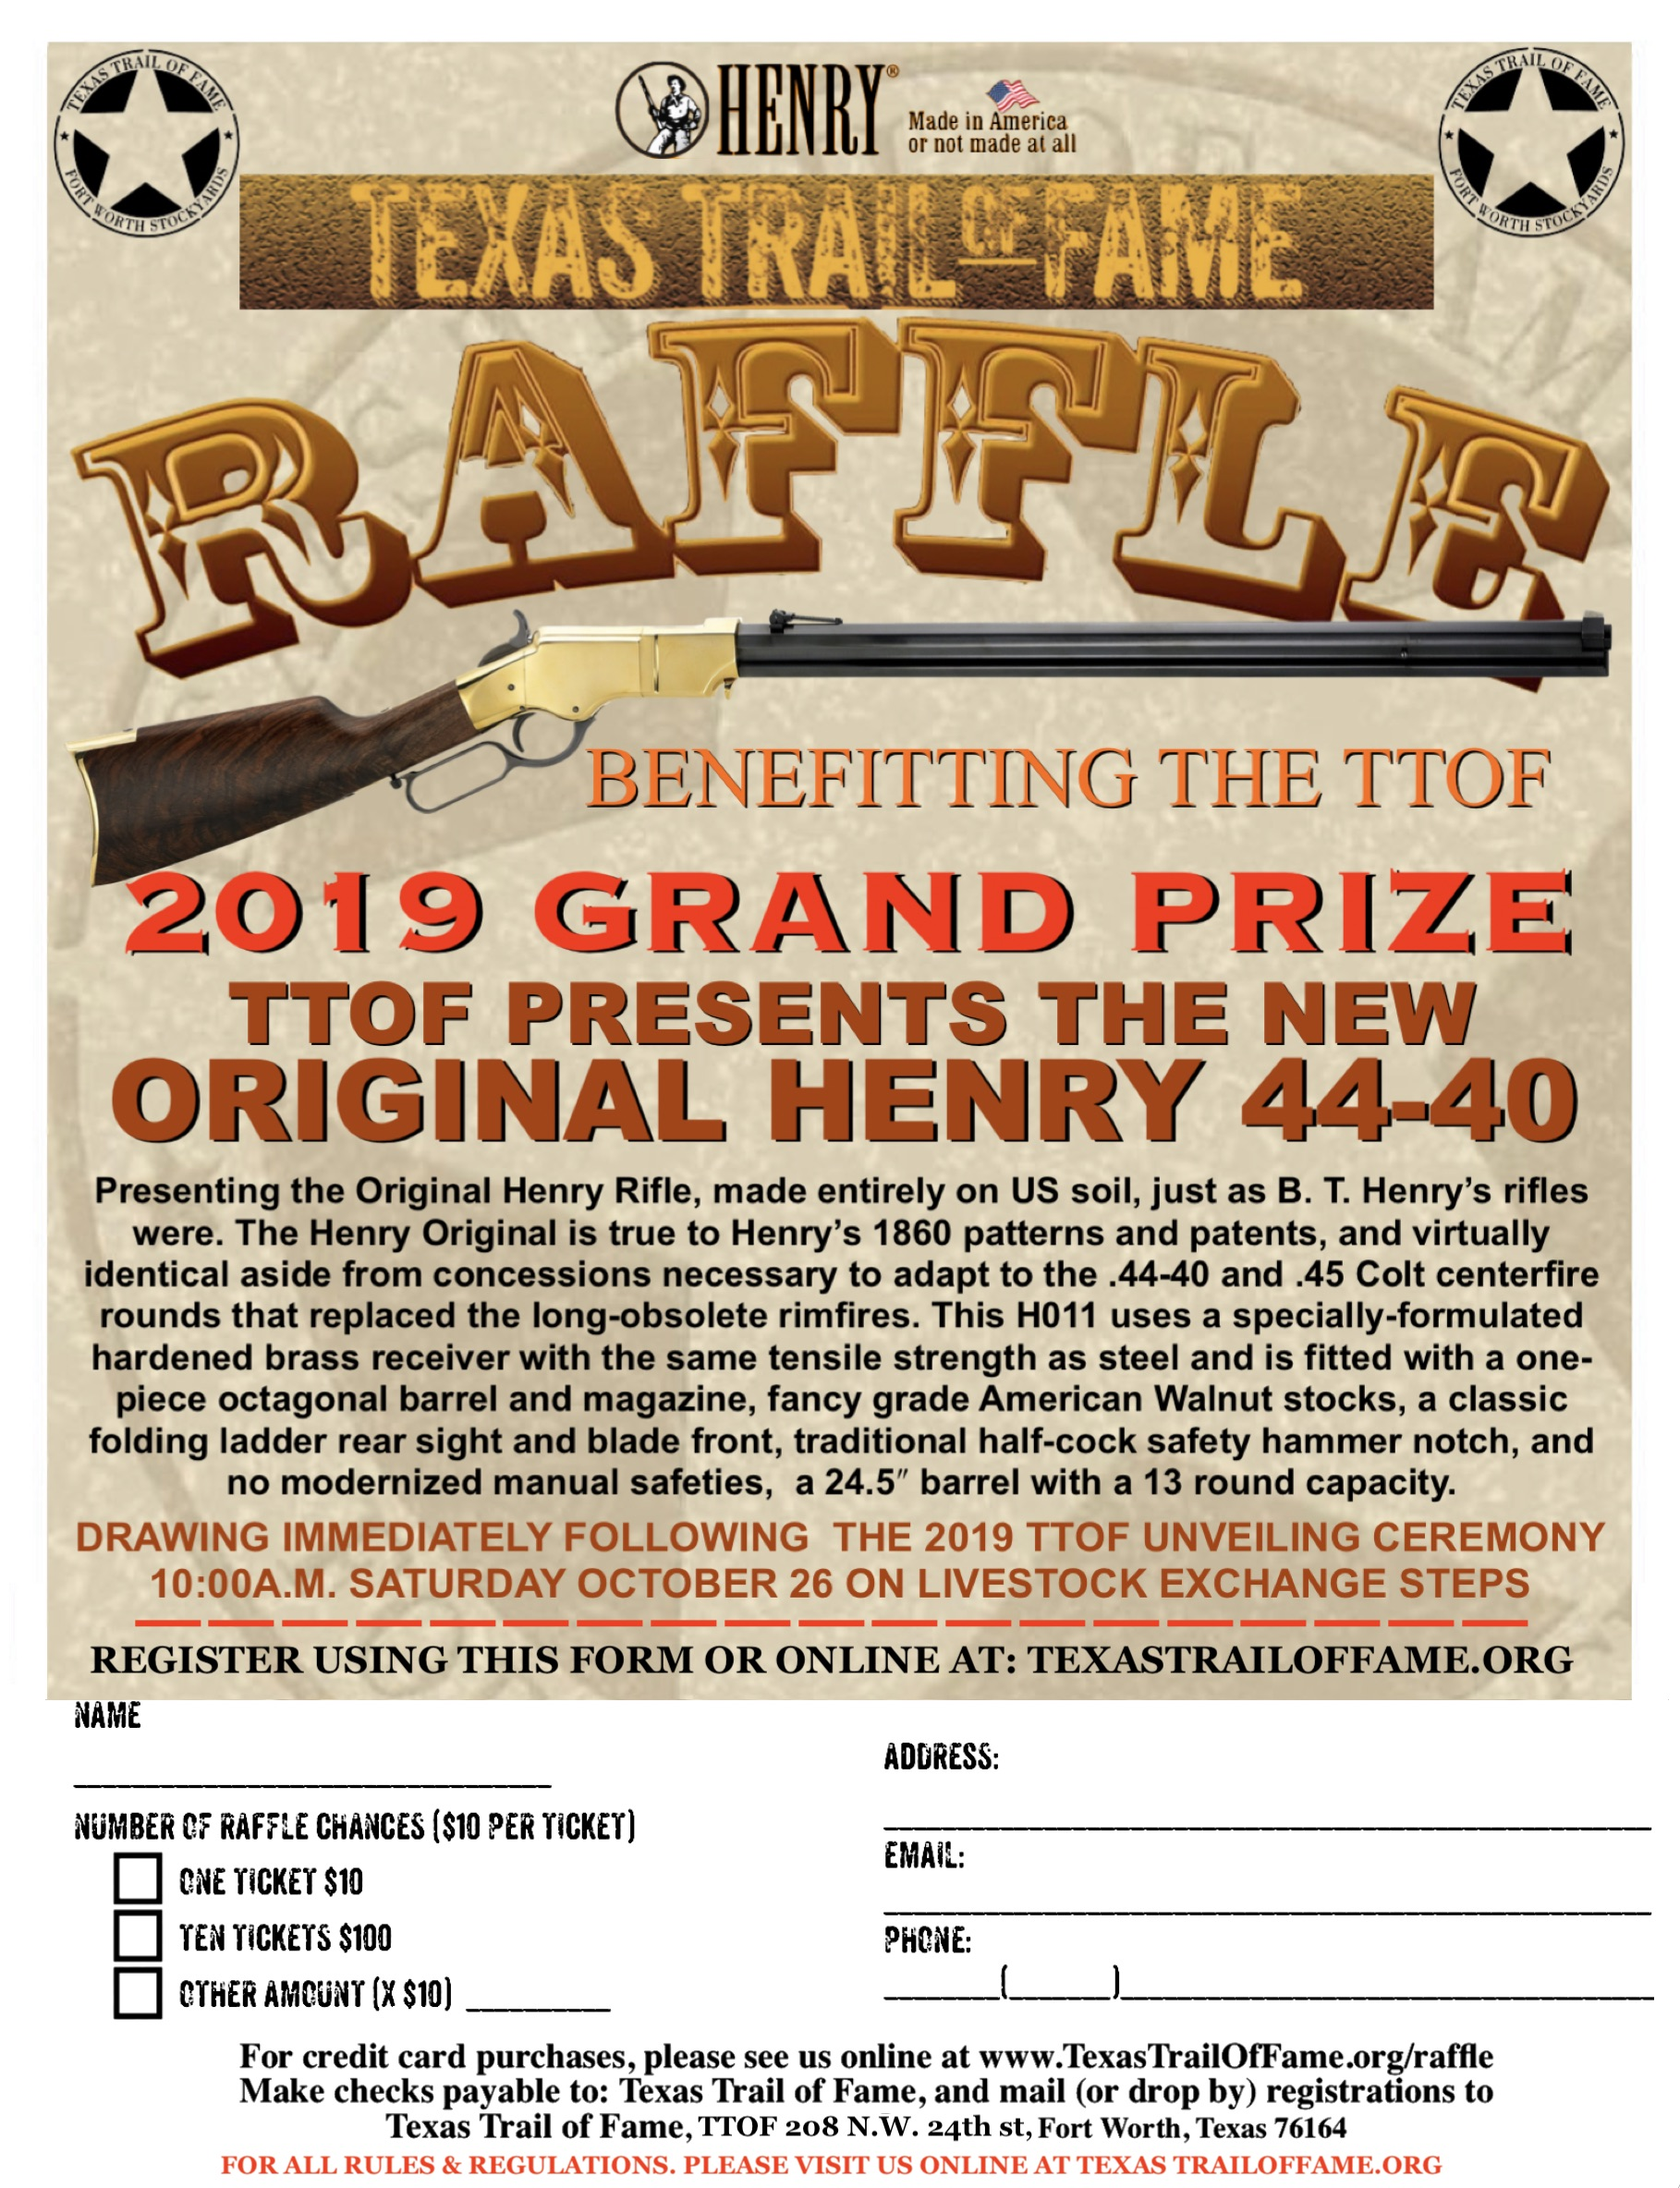 Raffle | Western Heritage from the Texas Trail of Fame